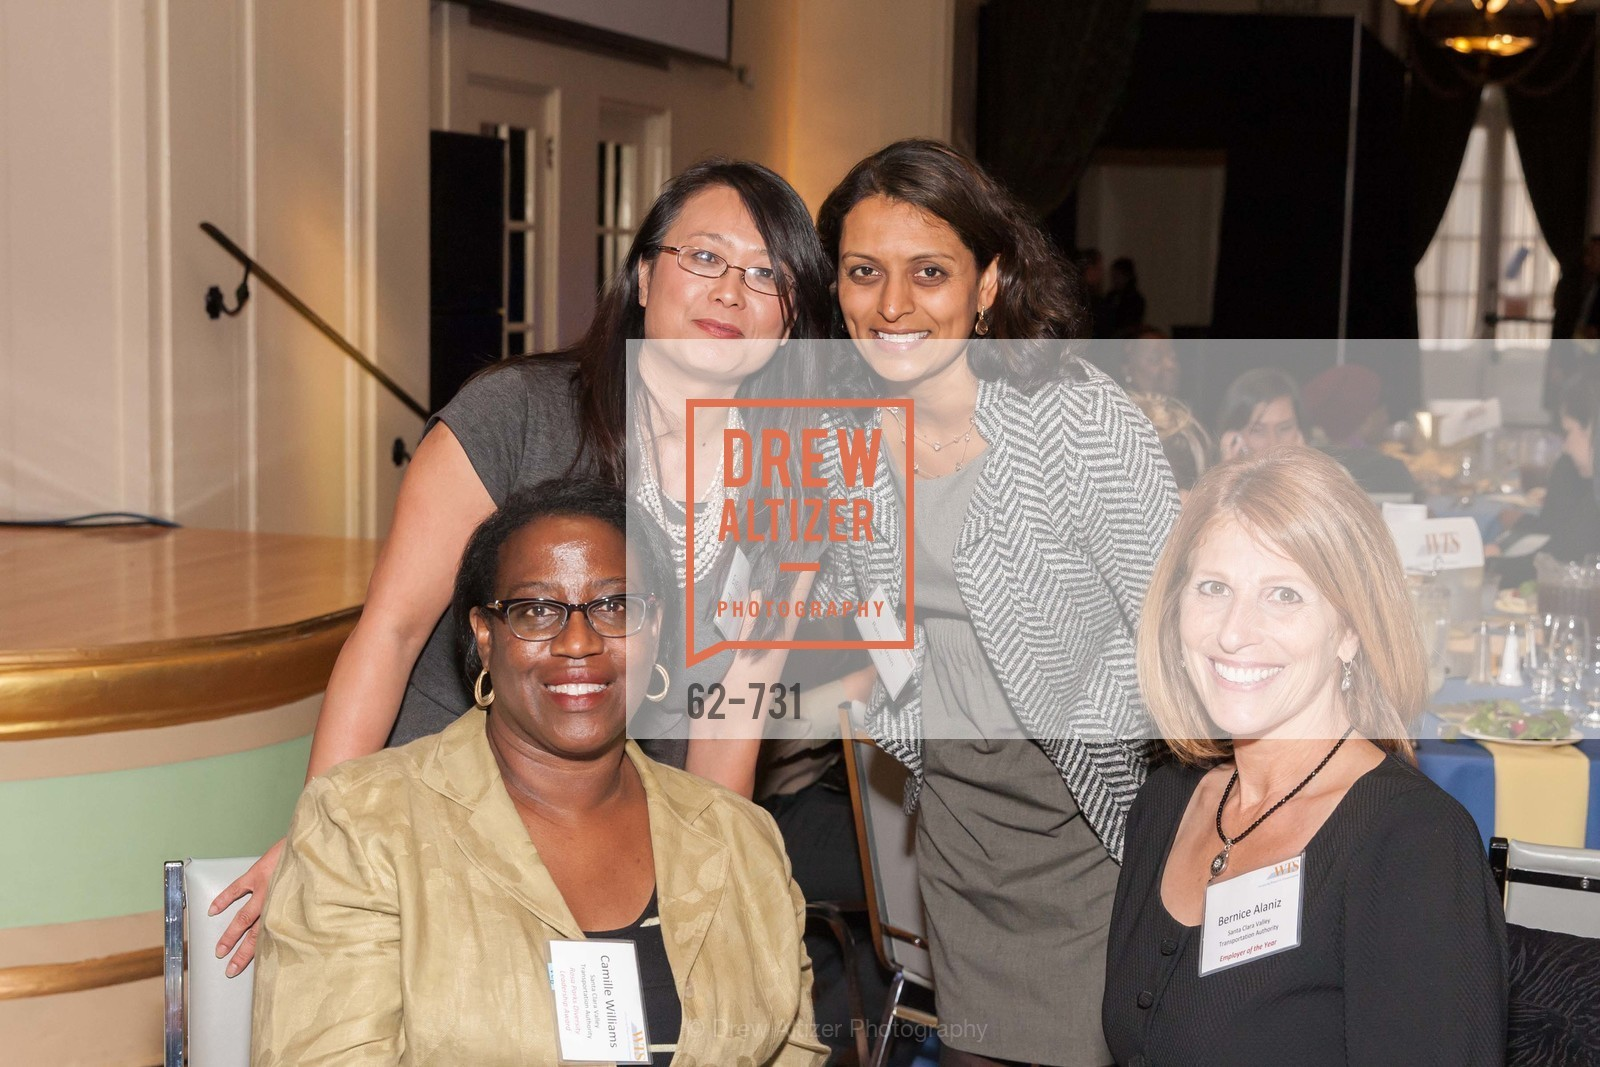 Camille Williams, Evelyn Tran, Ratna Amin, Bernice Alaniz, WOMEN'S TRANSPORTATION SEMINAR SF Bay Area Chapter Annual Scholarship Awards, US, May 14th, 2015,Drew Altizer, Drew Altizer Photography, full-service agency, private events, San Francisco photographer, photographer california